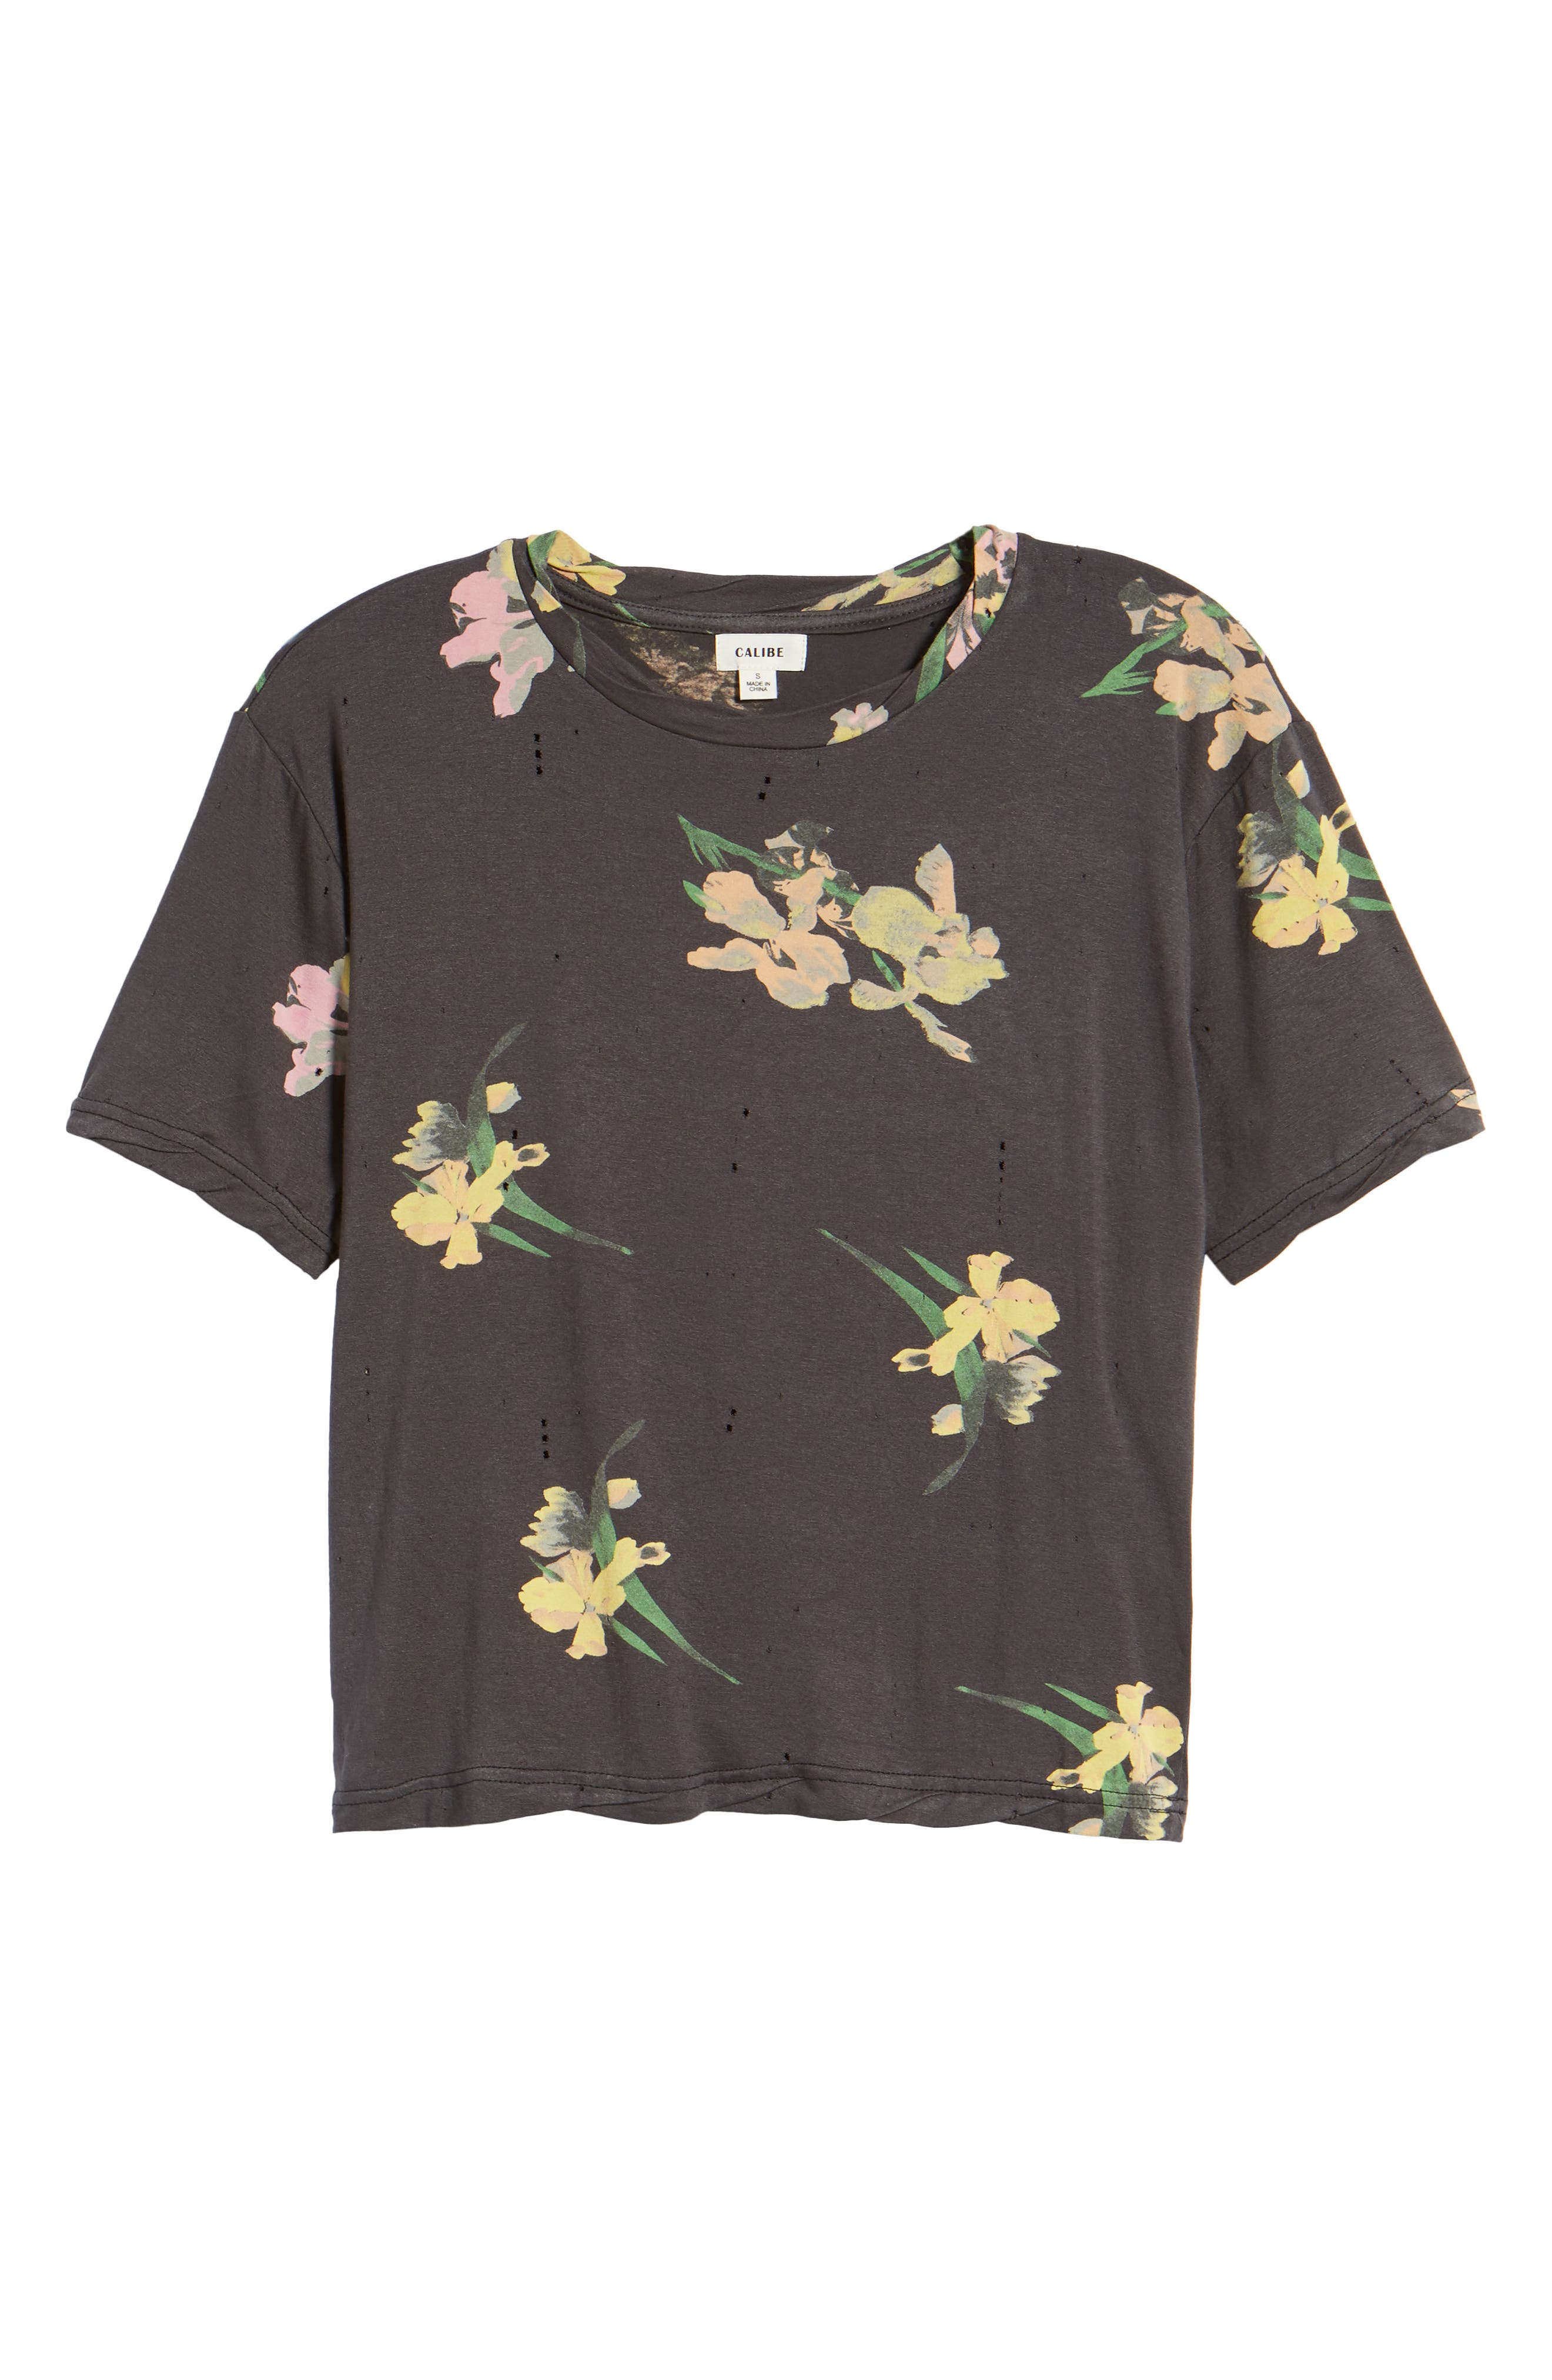 Floral Print Distressed Tee,                             Alternate thumbnail 7, color,                             Black Ground Floral